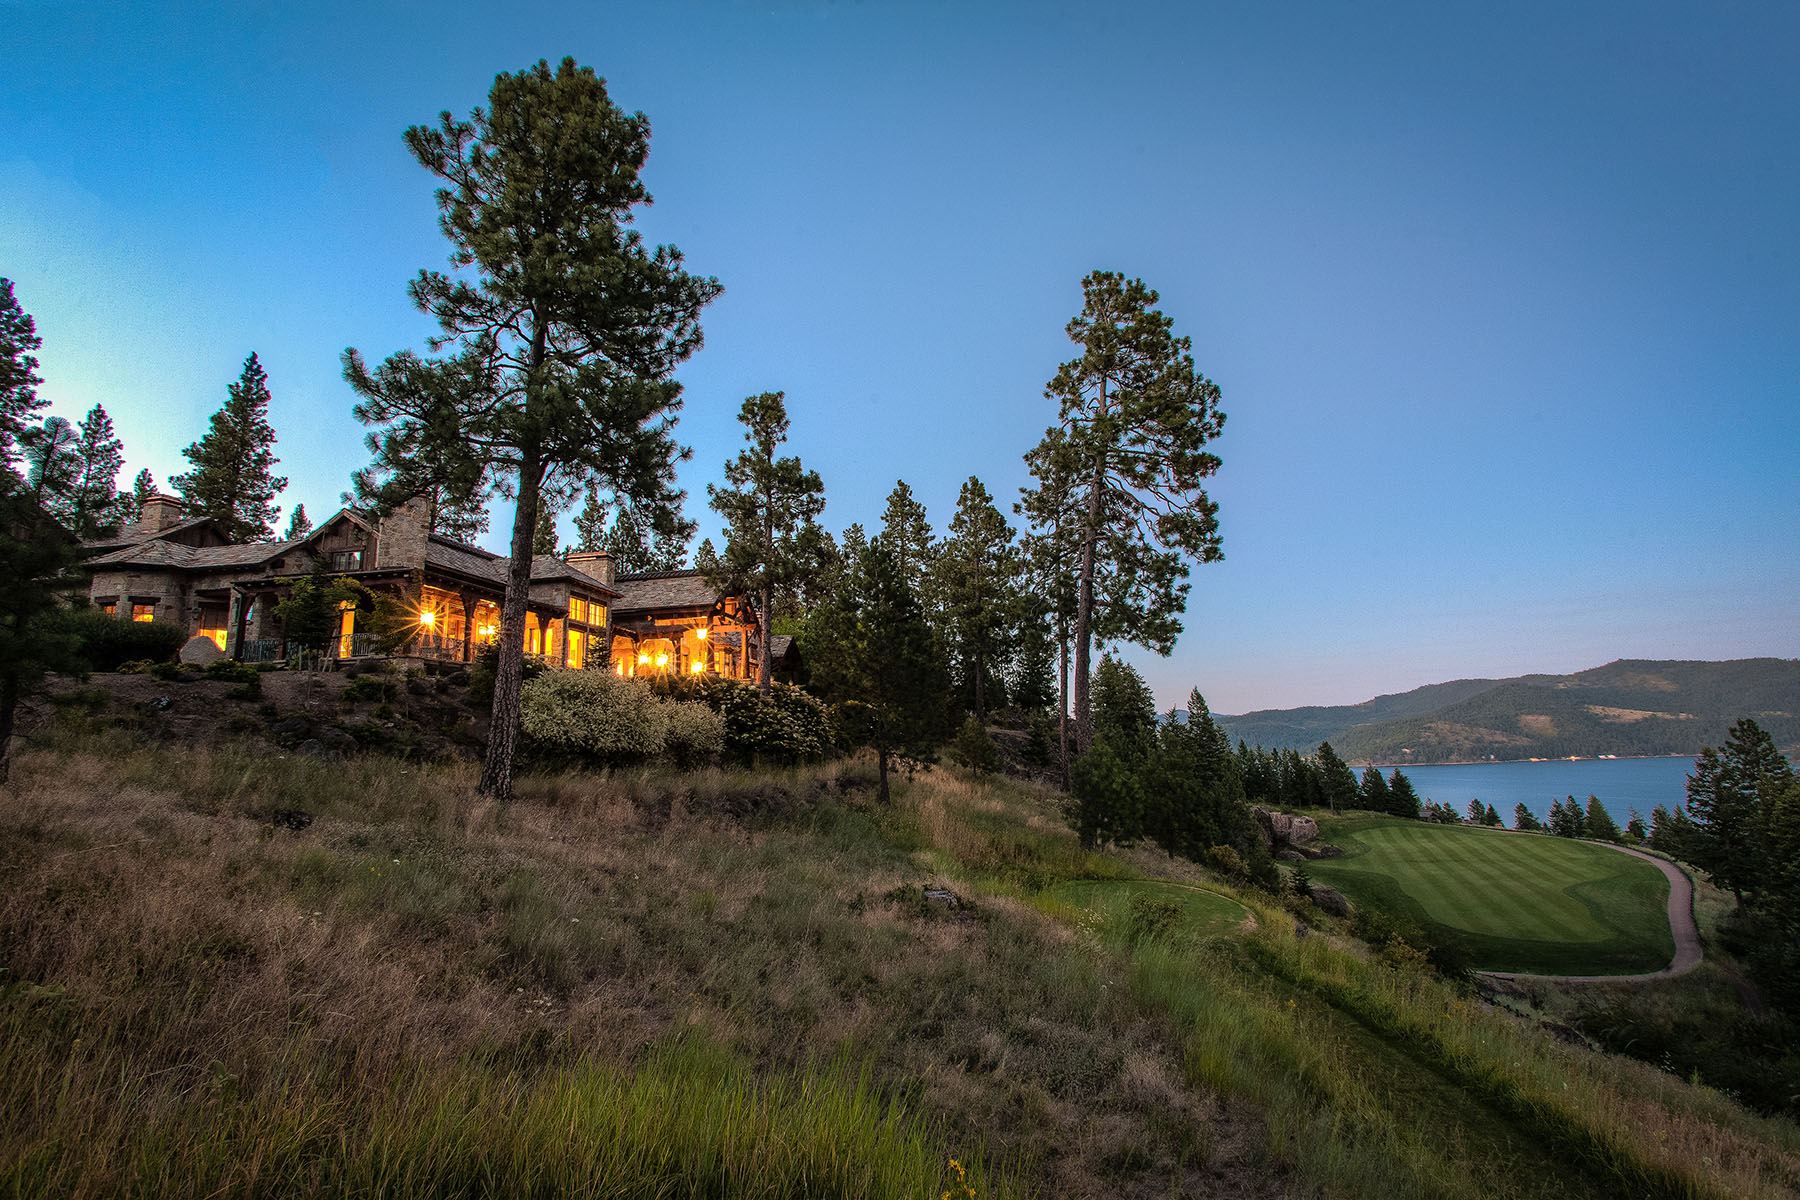 Single Family Home for Sale at The Ultimate Black Rock experience 6397 W PLATINUM DR Coeur D Alene, Idaho 83814 United States